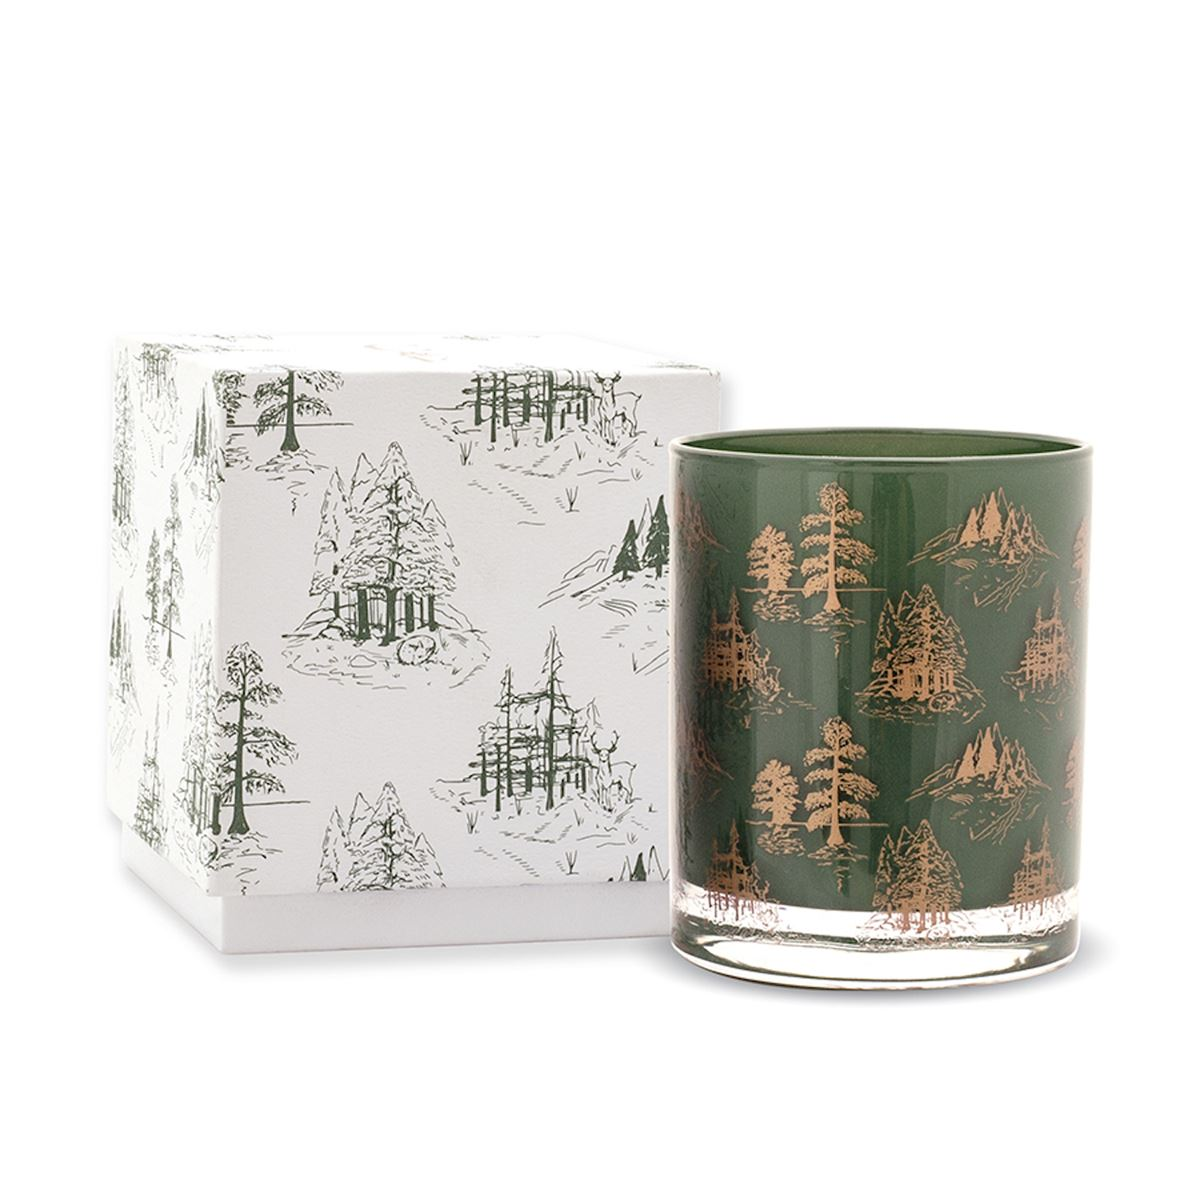 Cypress & Fir Boxed Candle